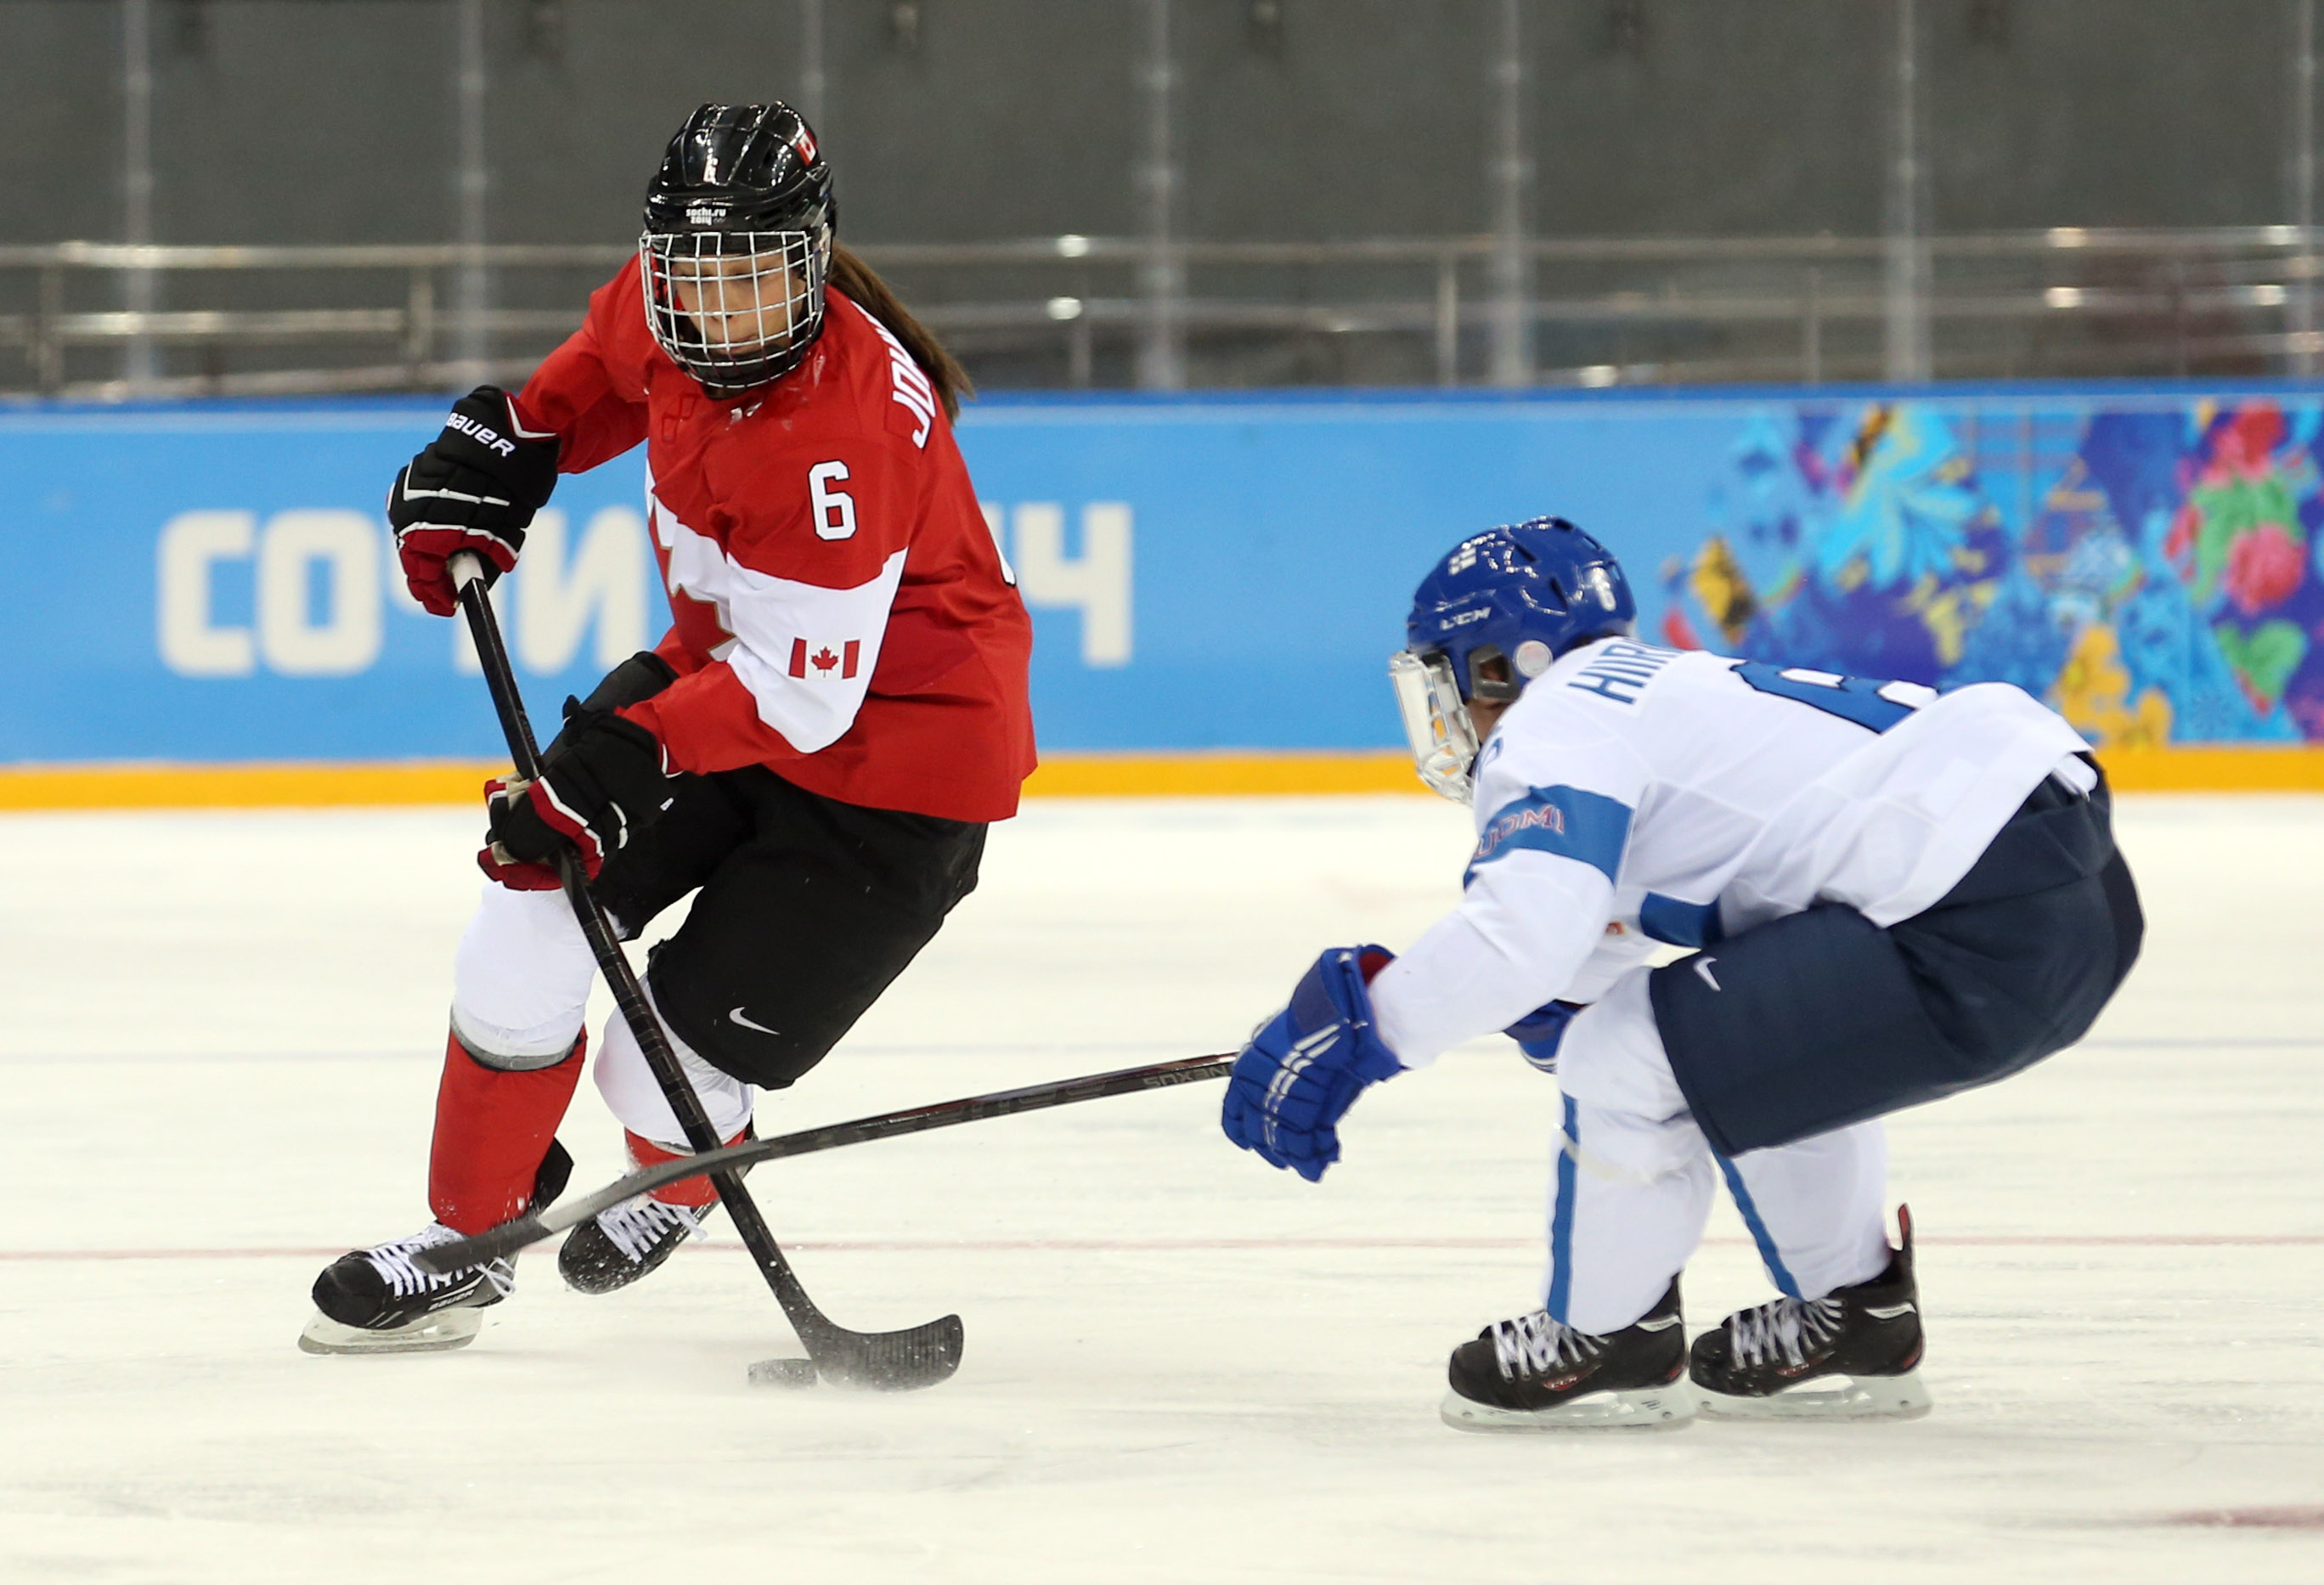 Rebecca Johnston, part of the gold-medal winning Canadian team in Sochi, had two assists in Sunday's win over Russia as Canada bounced back from a tough loss to Team USA in their opener.